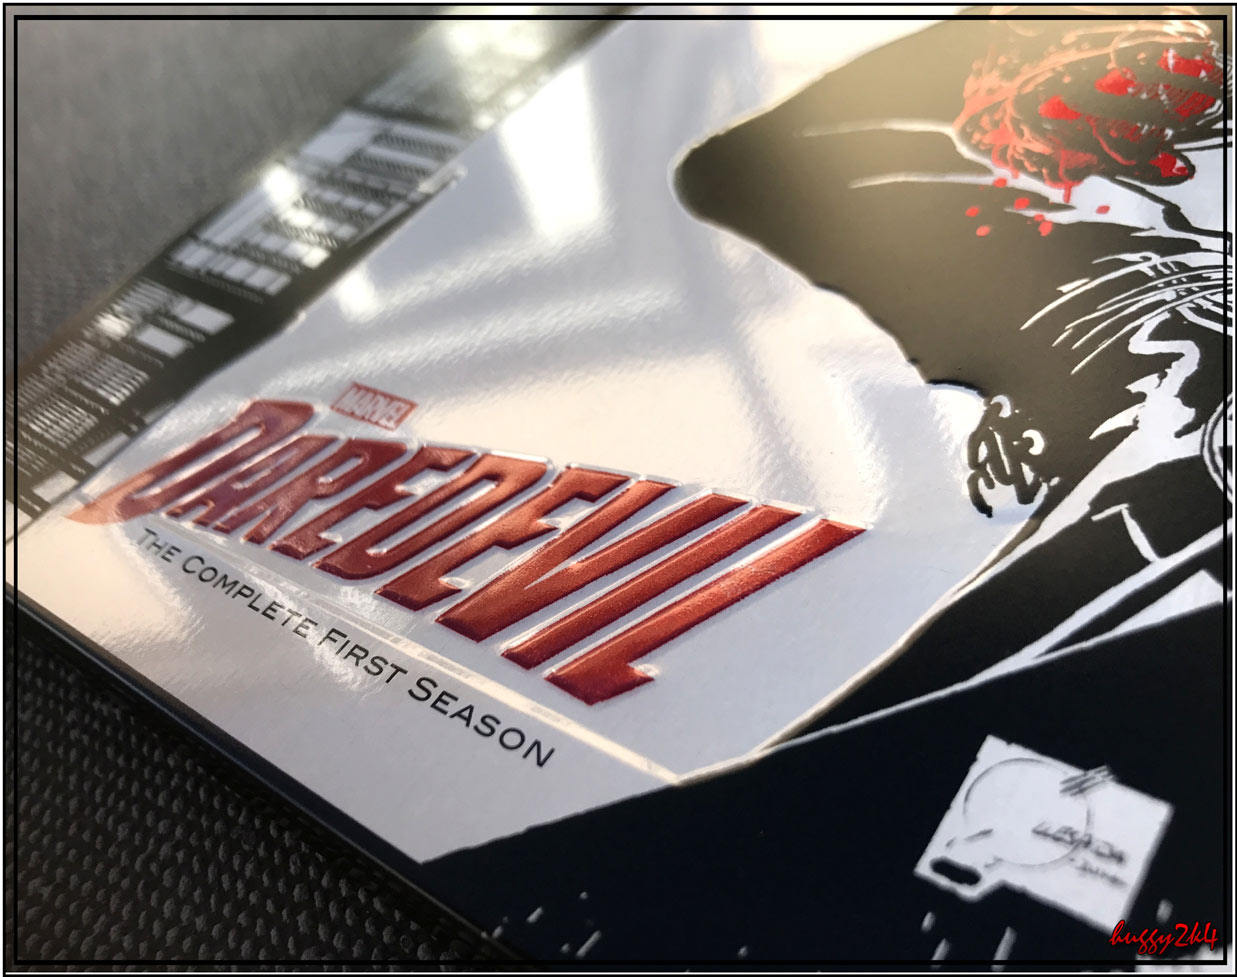 daredevil-steelbook-2